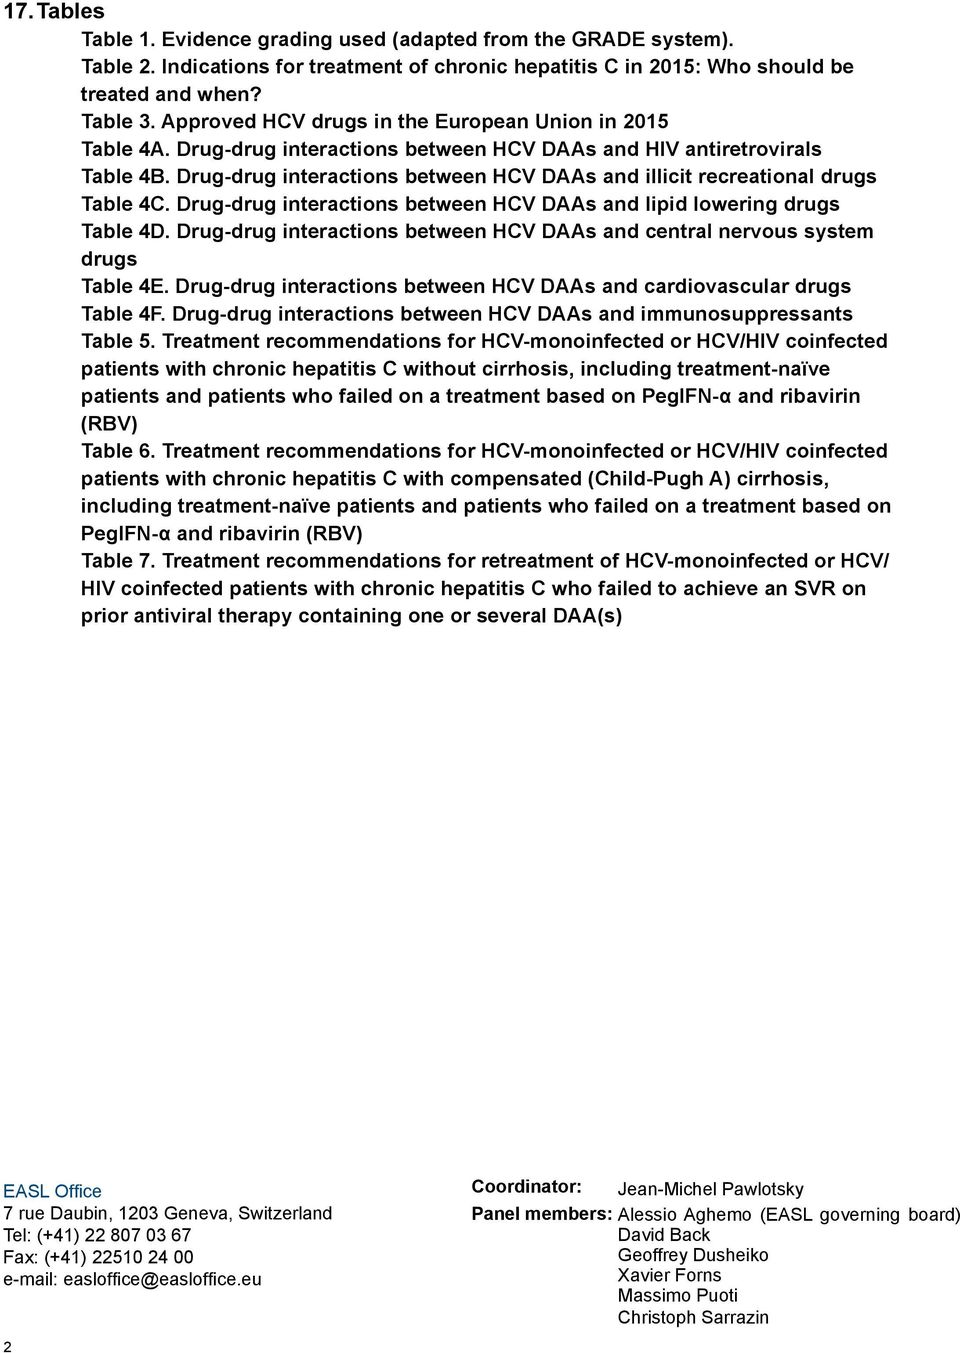 Drug-drug interactions between HCV DAAs and illicit recreational drugs Table 4C. Drug-drug interactions between HCV DAAs and lipid lowering drugs Table 4D.